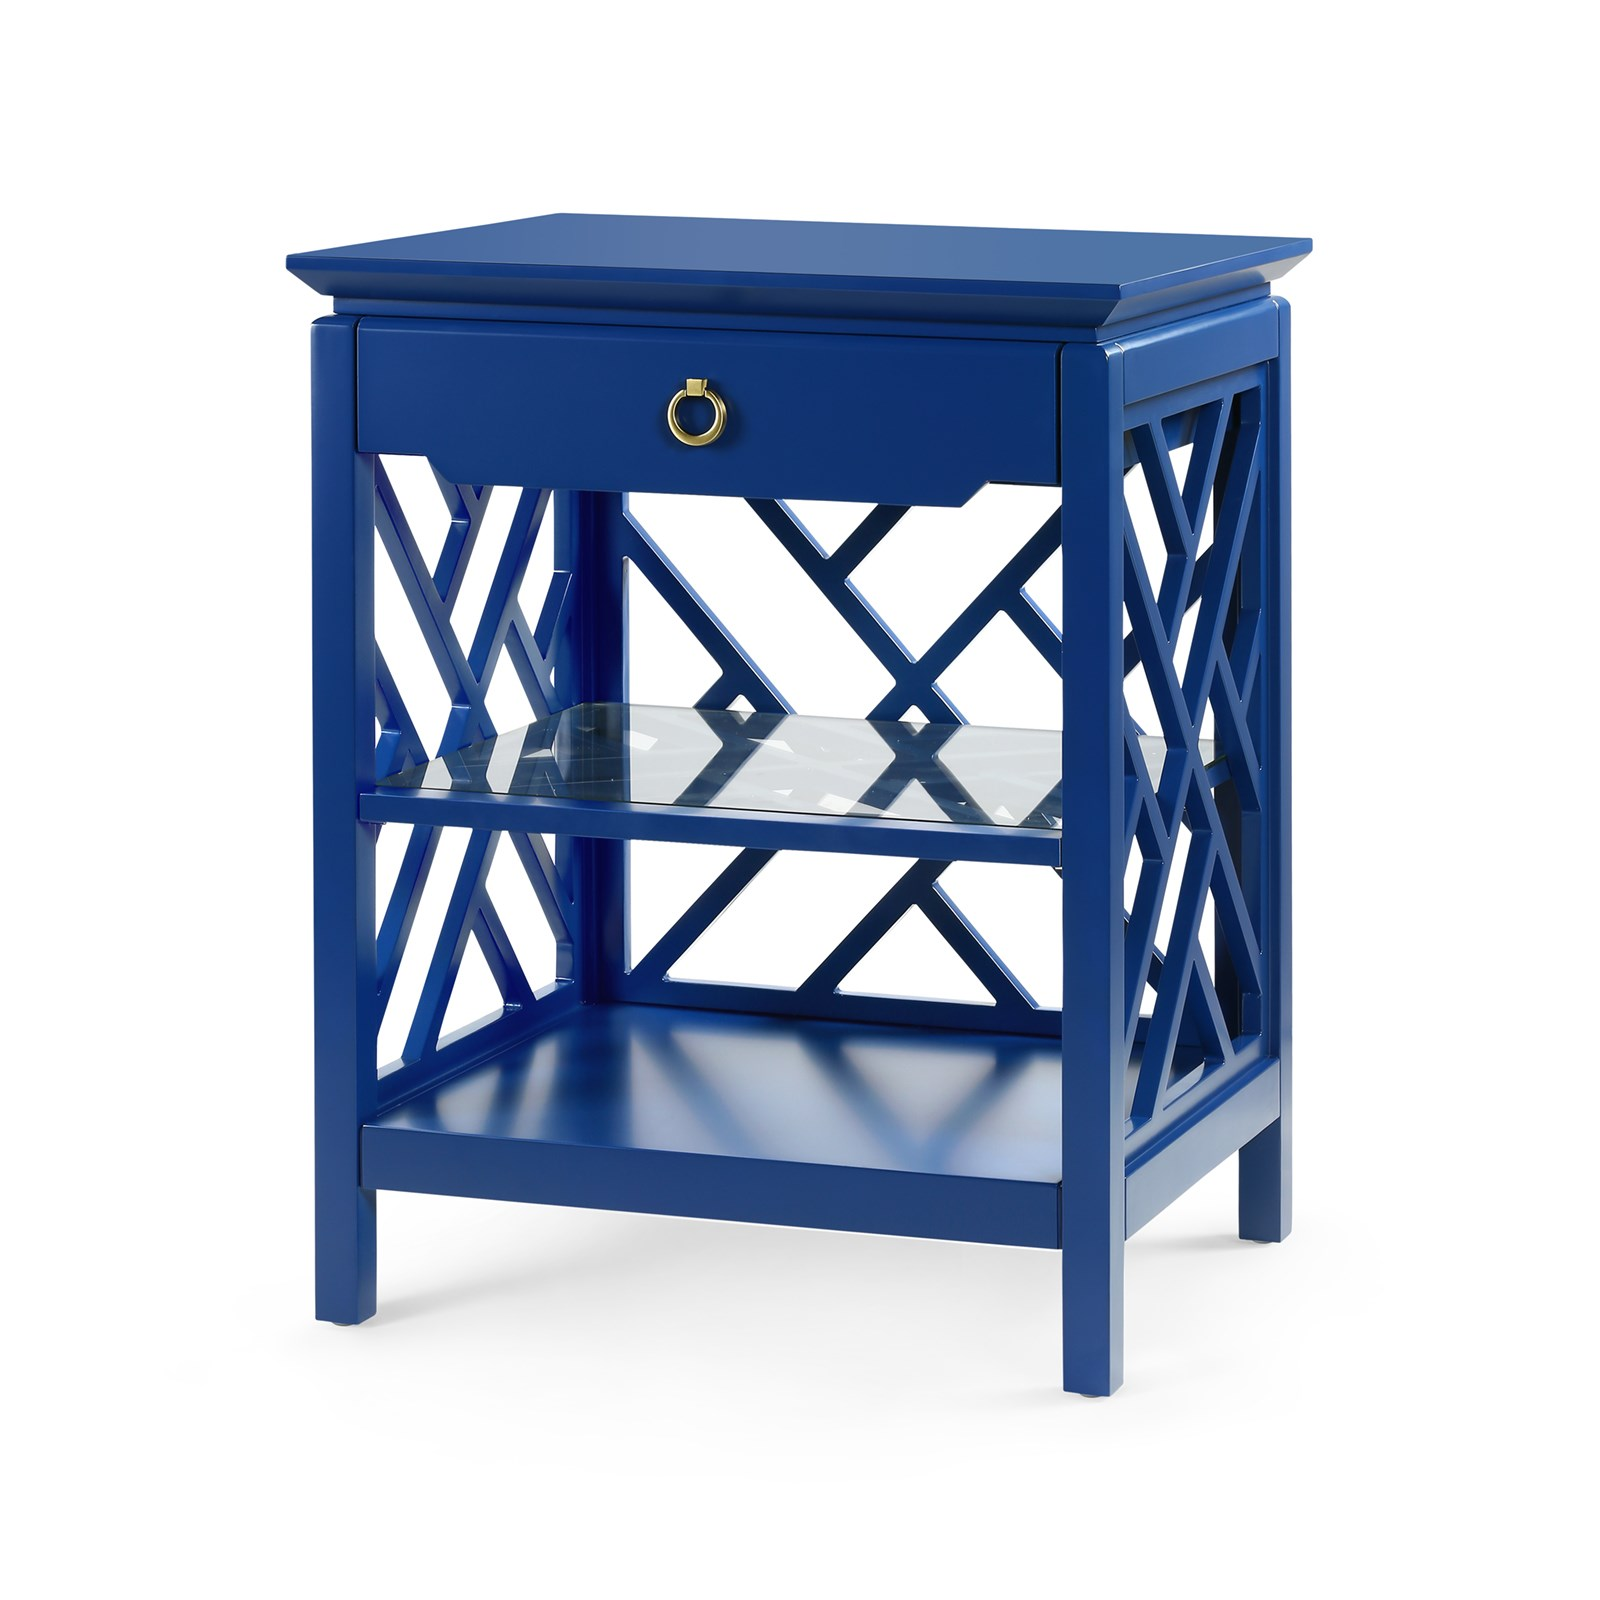 navy blue accent table ideas nan nantucket drawer side bungalow tremendeous modern baroque coffee oval patio cover big sun umbrella ikea ashley furniture ott rustic wine cabinet